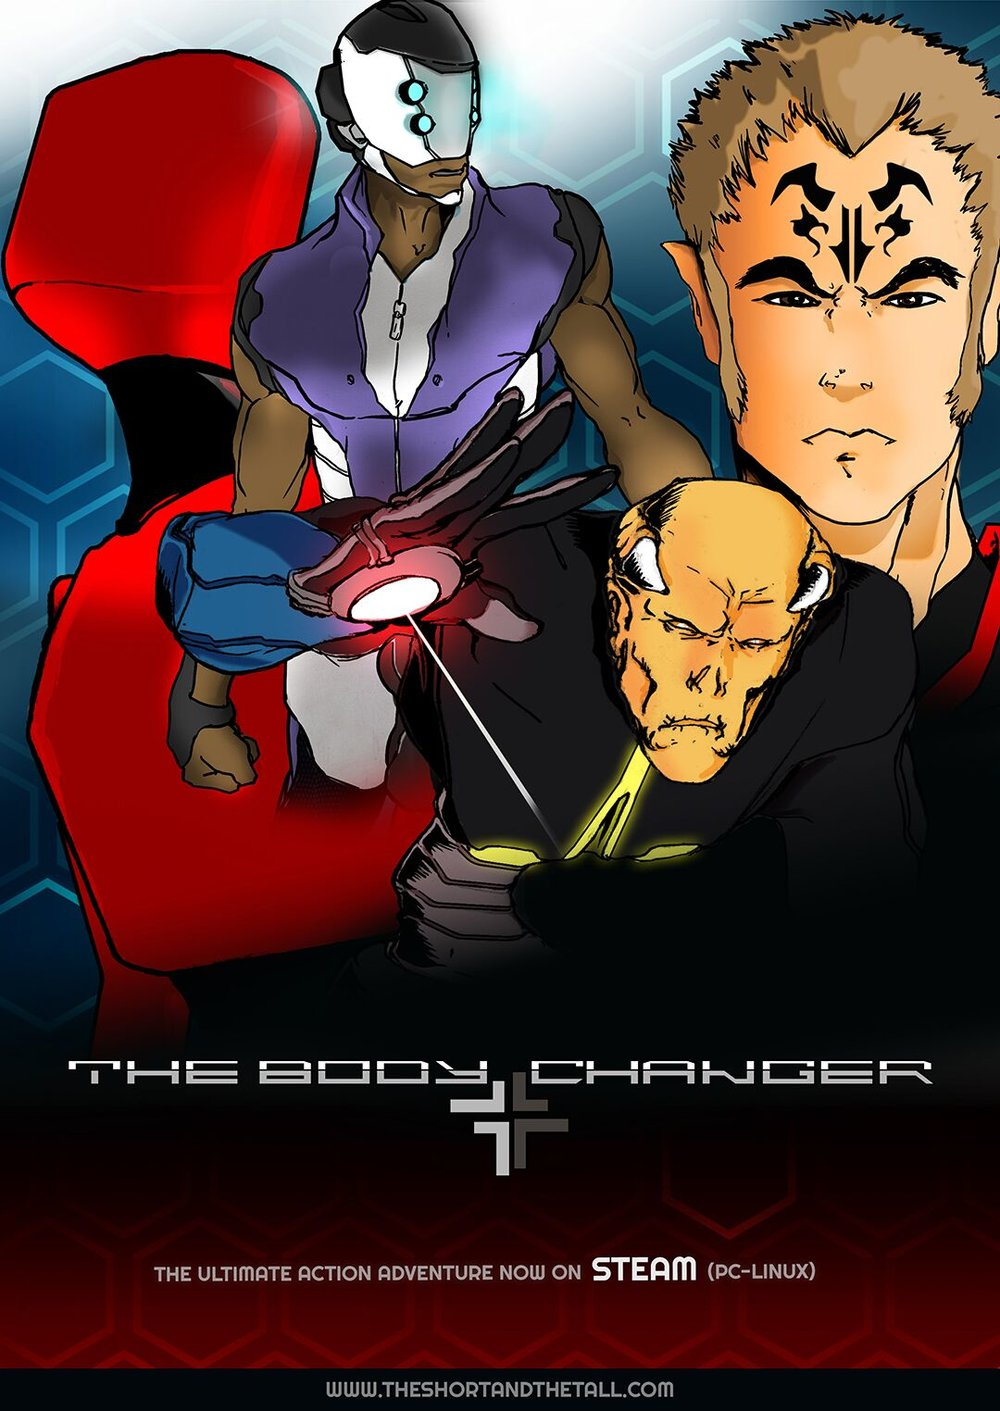 The Body Changer (steam)